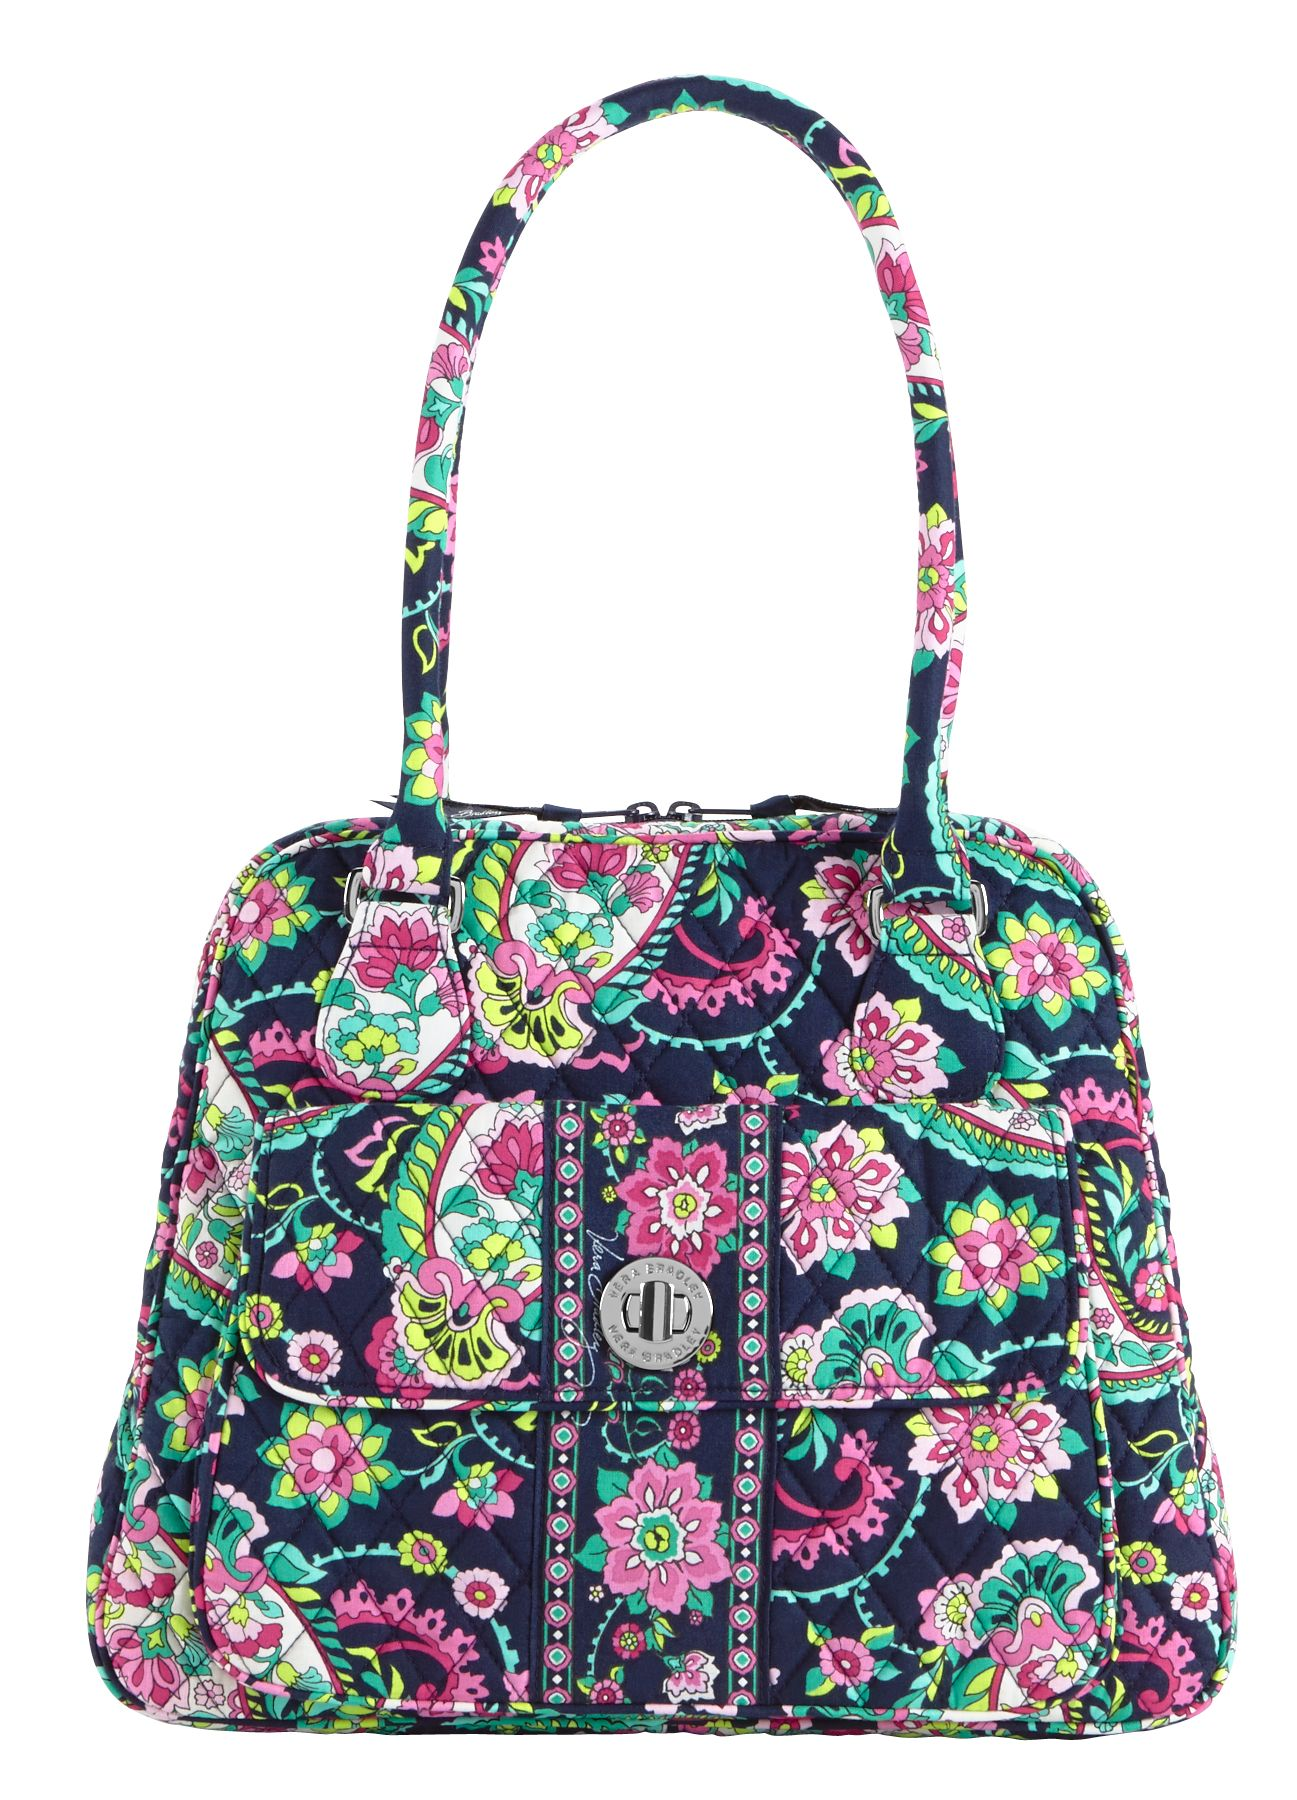 Vera Bradley Turn Lock Satchel in Petal Paisley